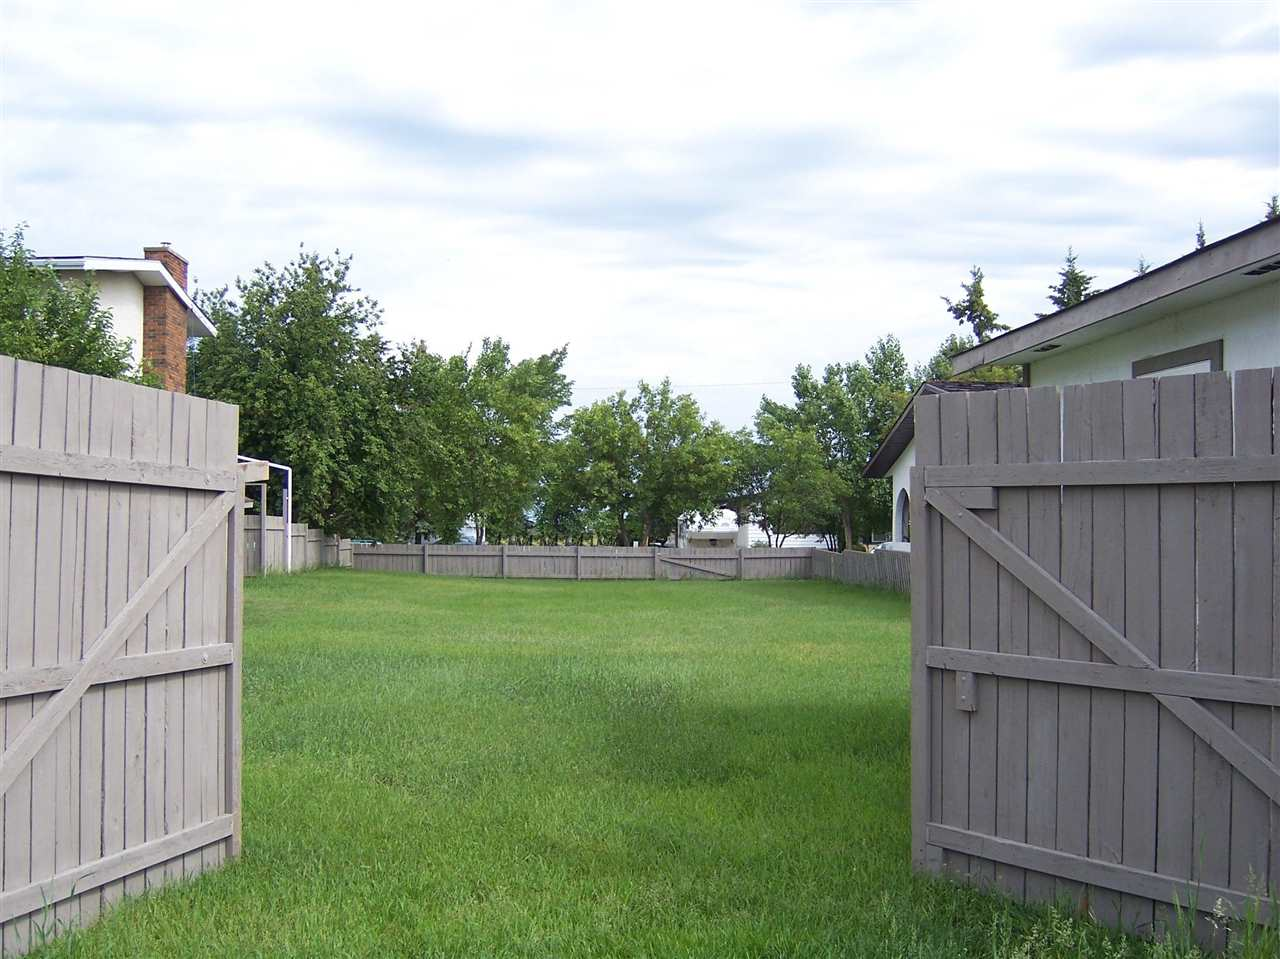 If you are looking for an affordable large lot to be able to build your future home on with back alley access look no further.  Close to the local hospital and all other services.  This lot has been maintained with grass and is completely fenced.